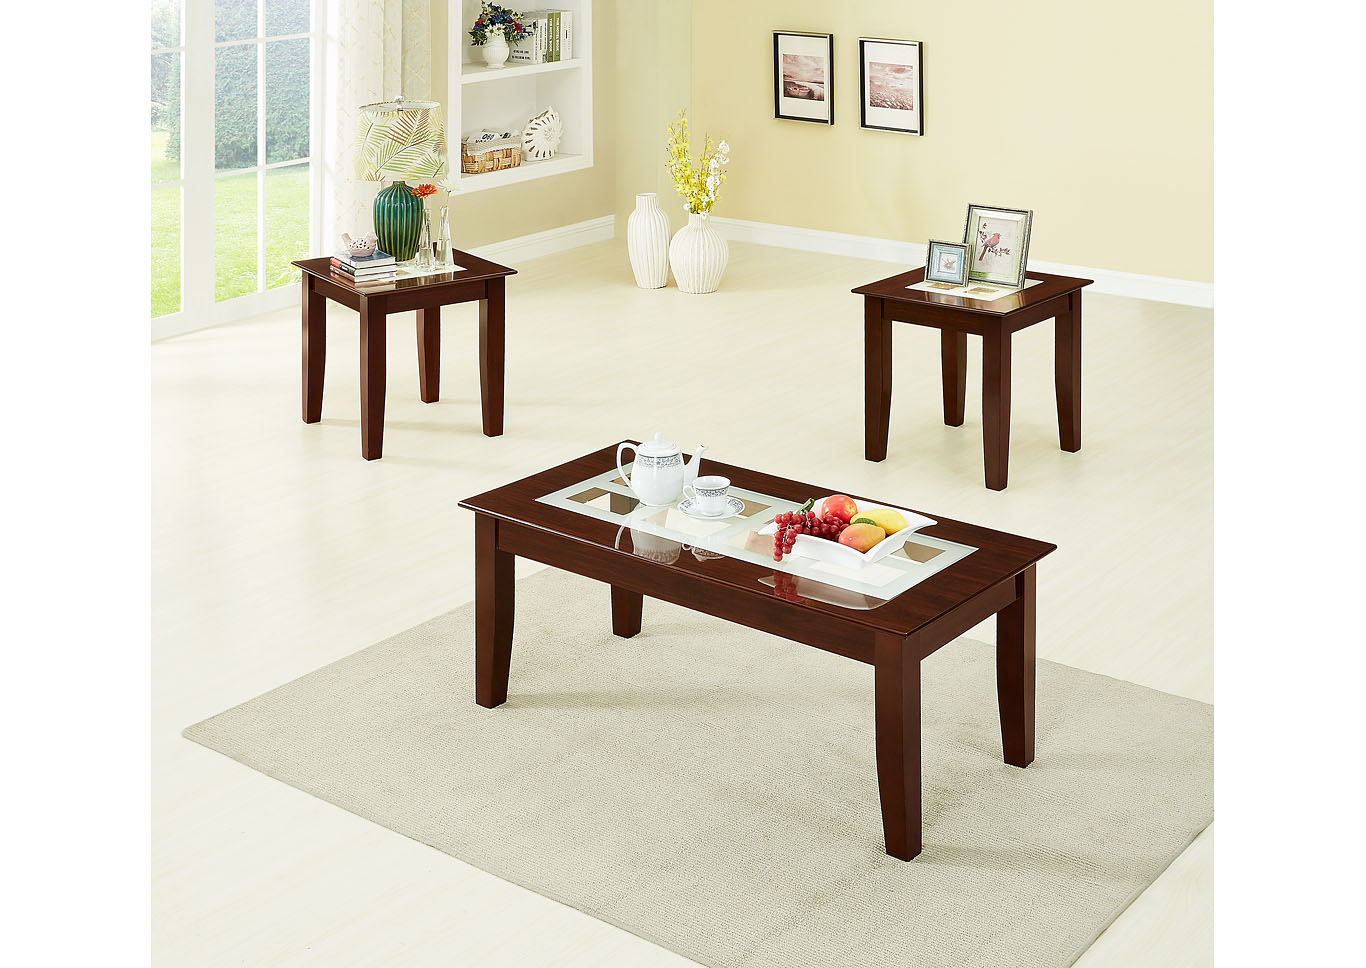 Cappuccino 3 Piece Coffee & End Table Set W/ Frosted Glass Insert,Global Trading